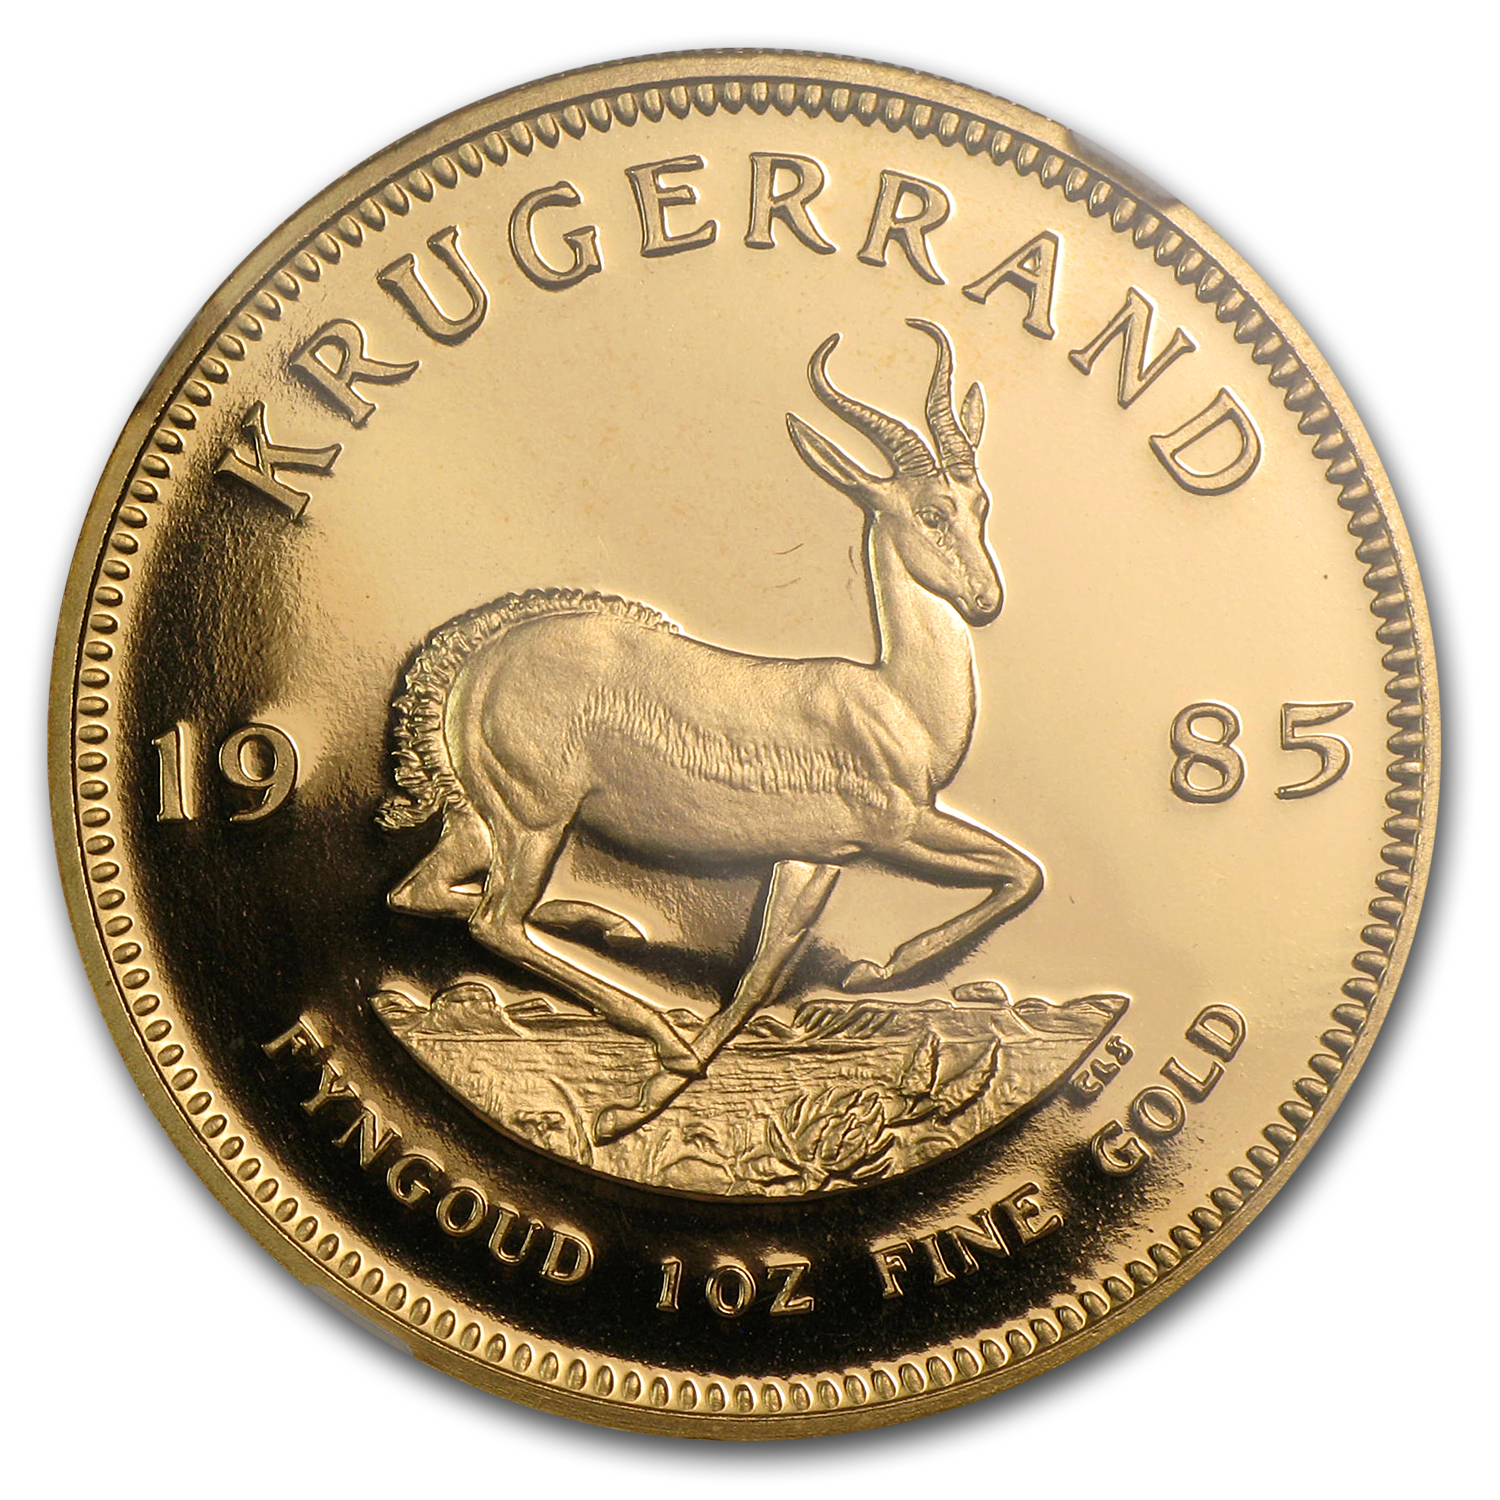 1985 South Africa 1 oz Gold Krugerrand PF-69 NGC